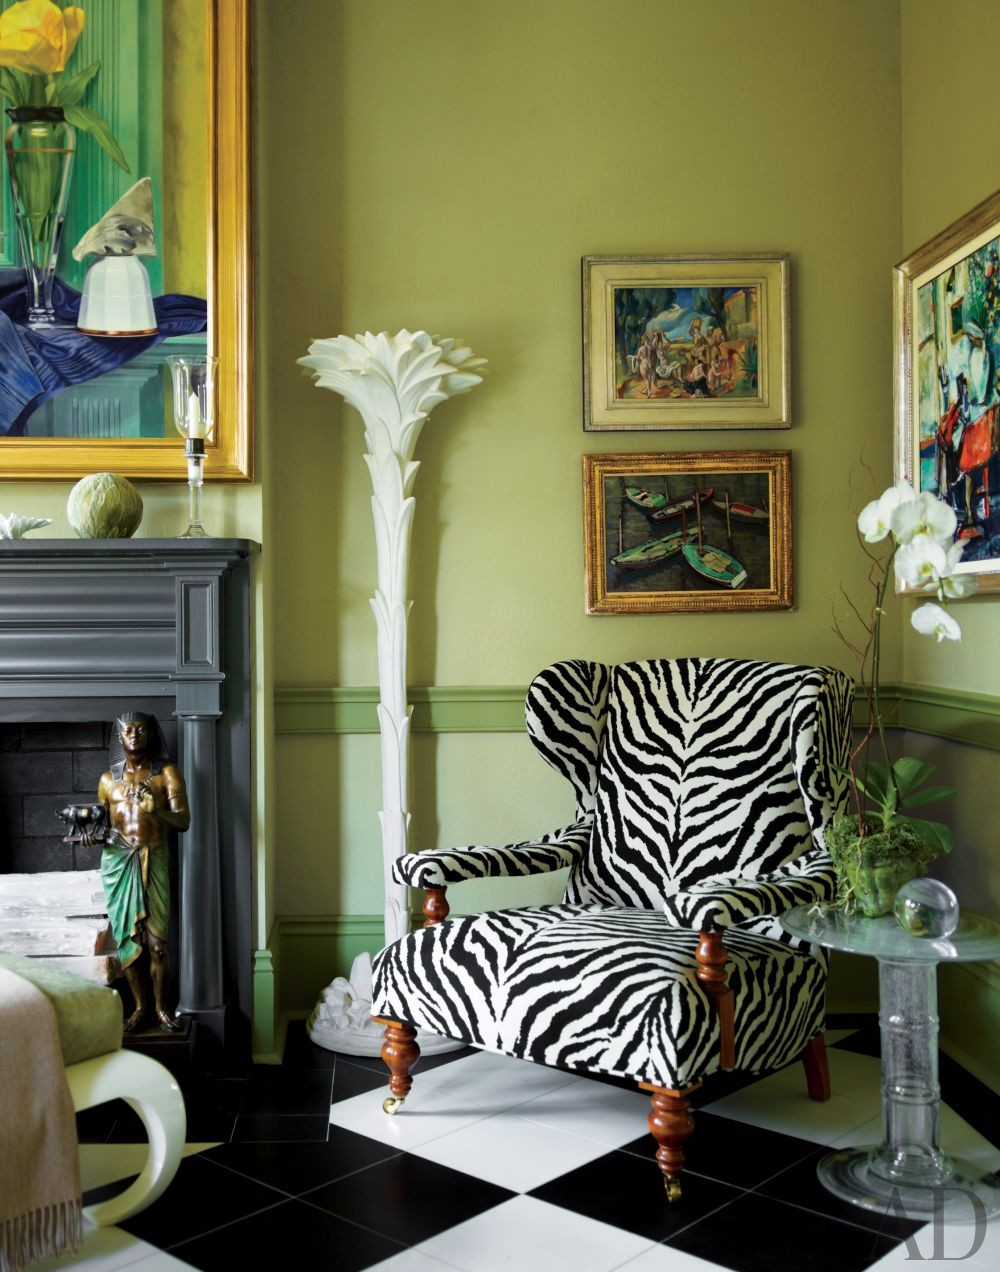 Family Room Design Ideas That Will Keep Everyone Happy: These 4 Colours In Your Home Can Be Affecting Your Mood